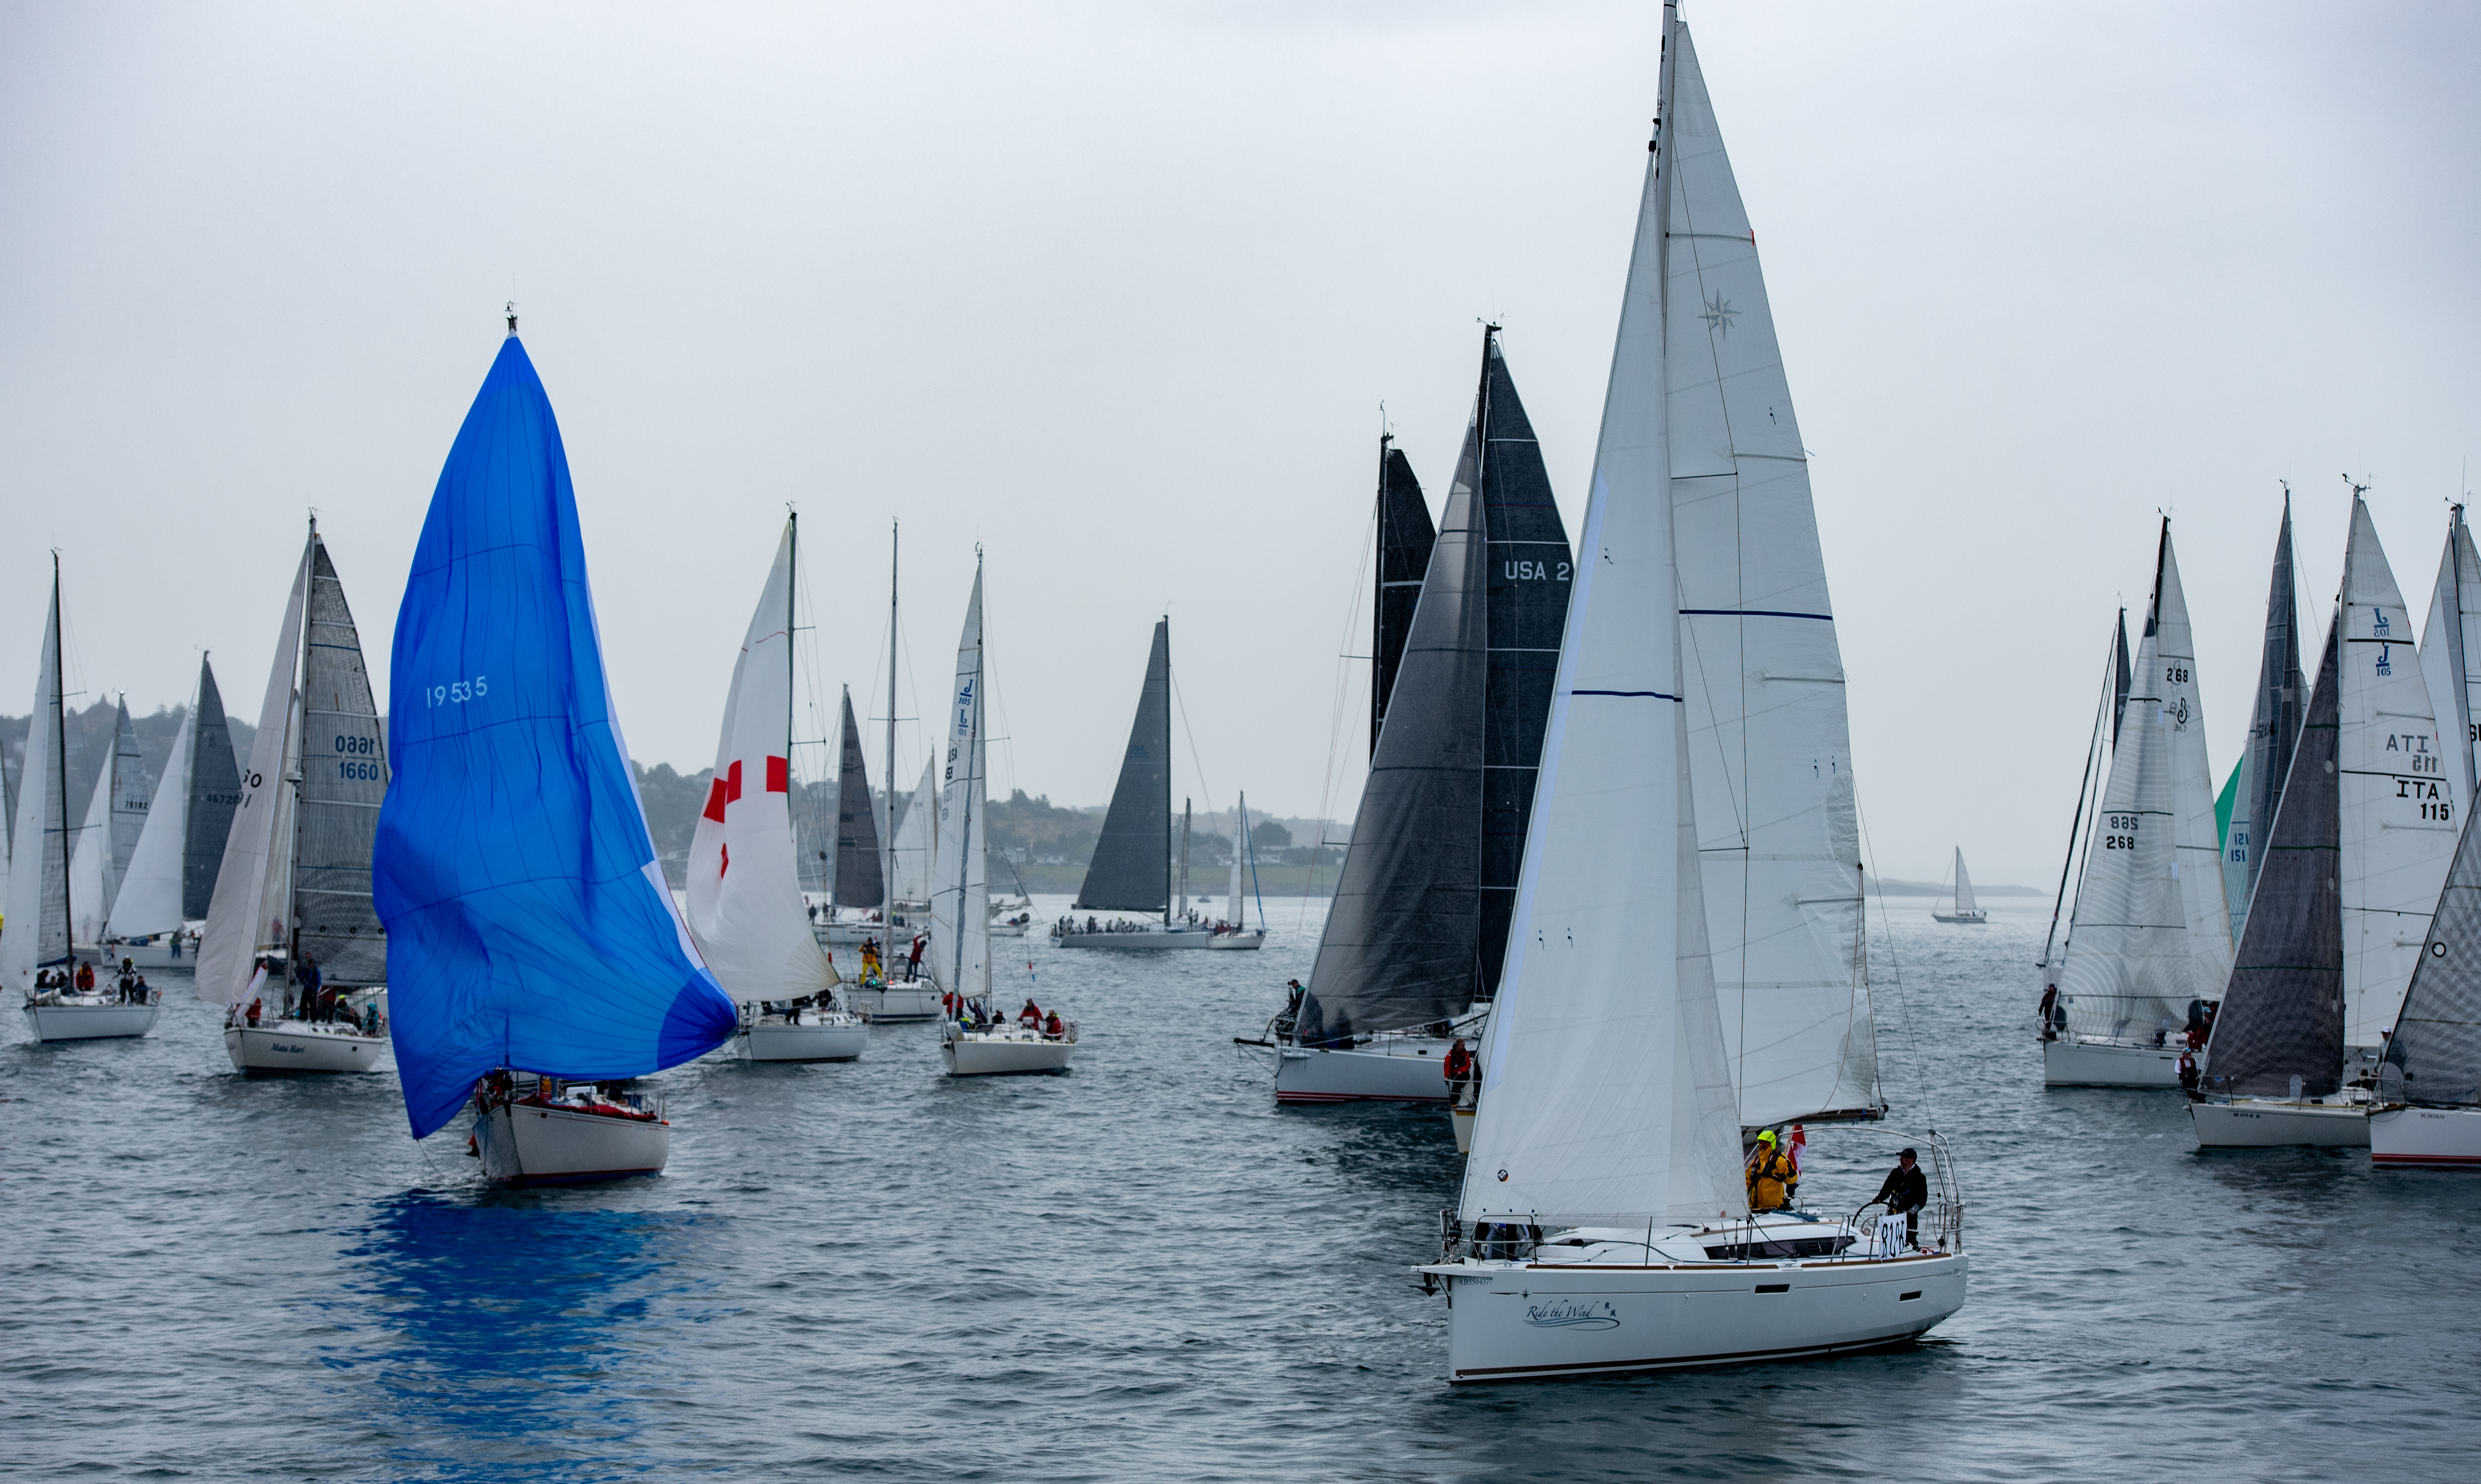 Swiftsure-25-May-2019-RMS-Media-by-Rob-Porter-41